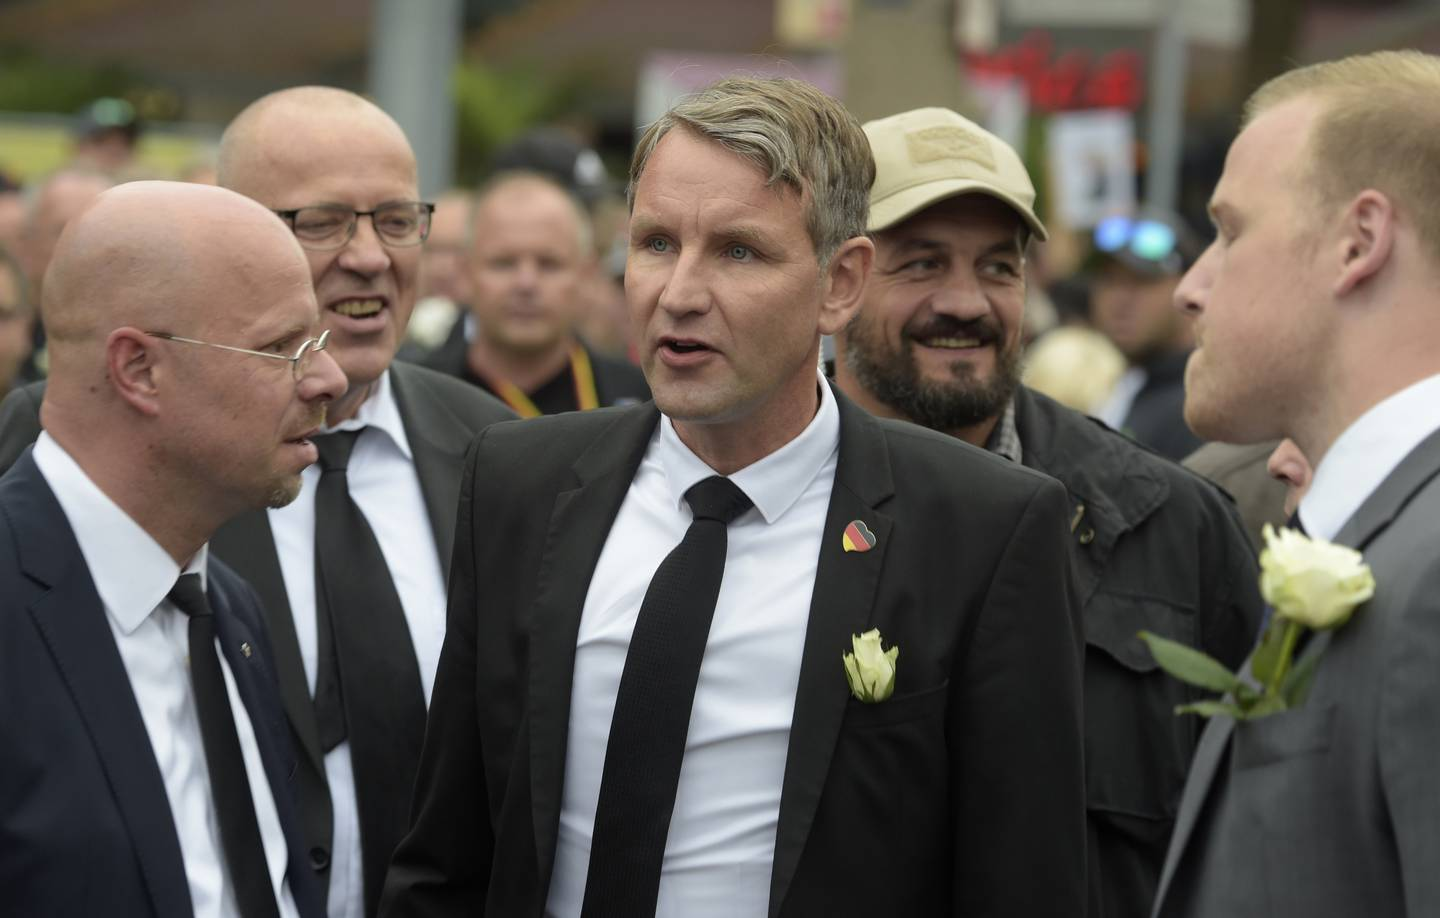 CORRECTS SPELLING - Bjoern Hoecke, center, leader of the Alternative for Germany, AfD, in German state of Thuringia, participates in a commemoration march in Chemnitz, eastern Germany, Saturday, Sept. 1, 2018, after several nationalist groups called for marches protesting the killing of a German man last week, allegedly by migrants from Syria and Iraq. (AP Photo/Jens Meyer)